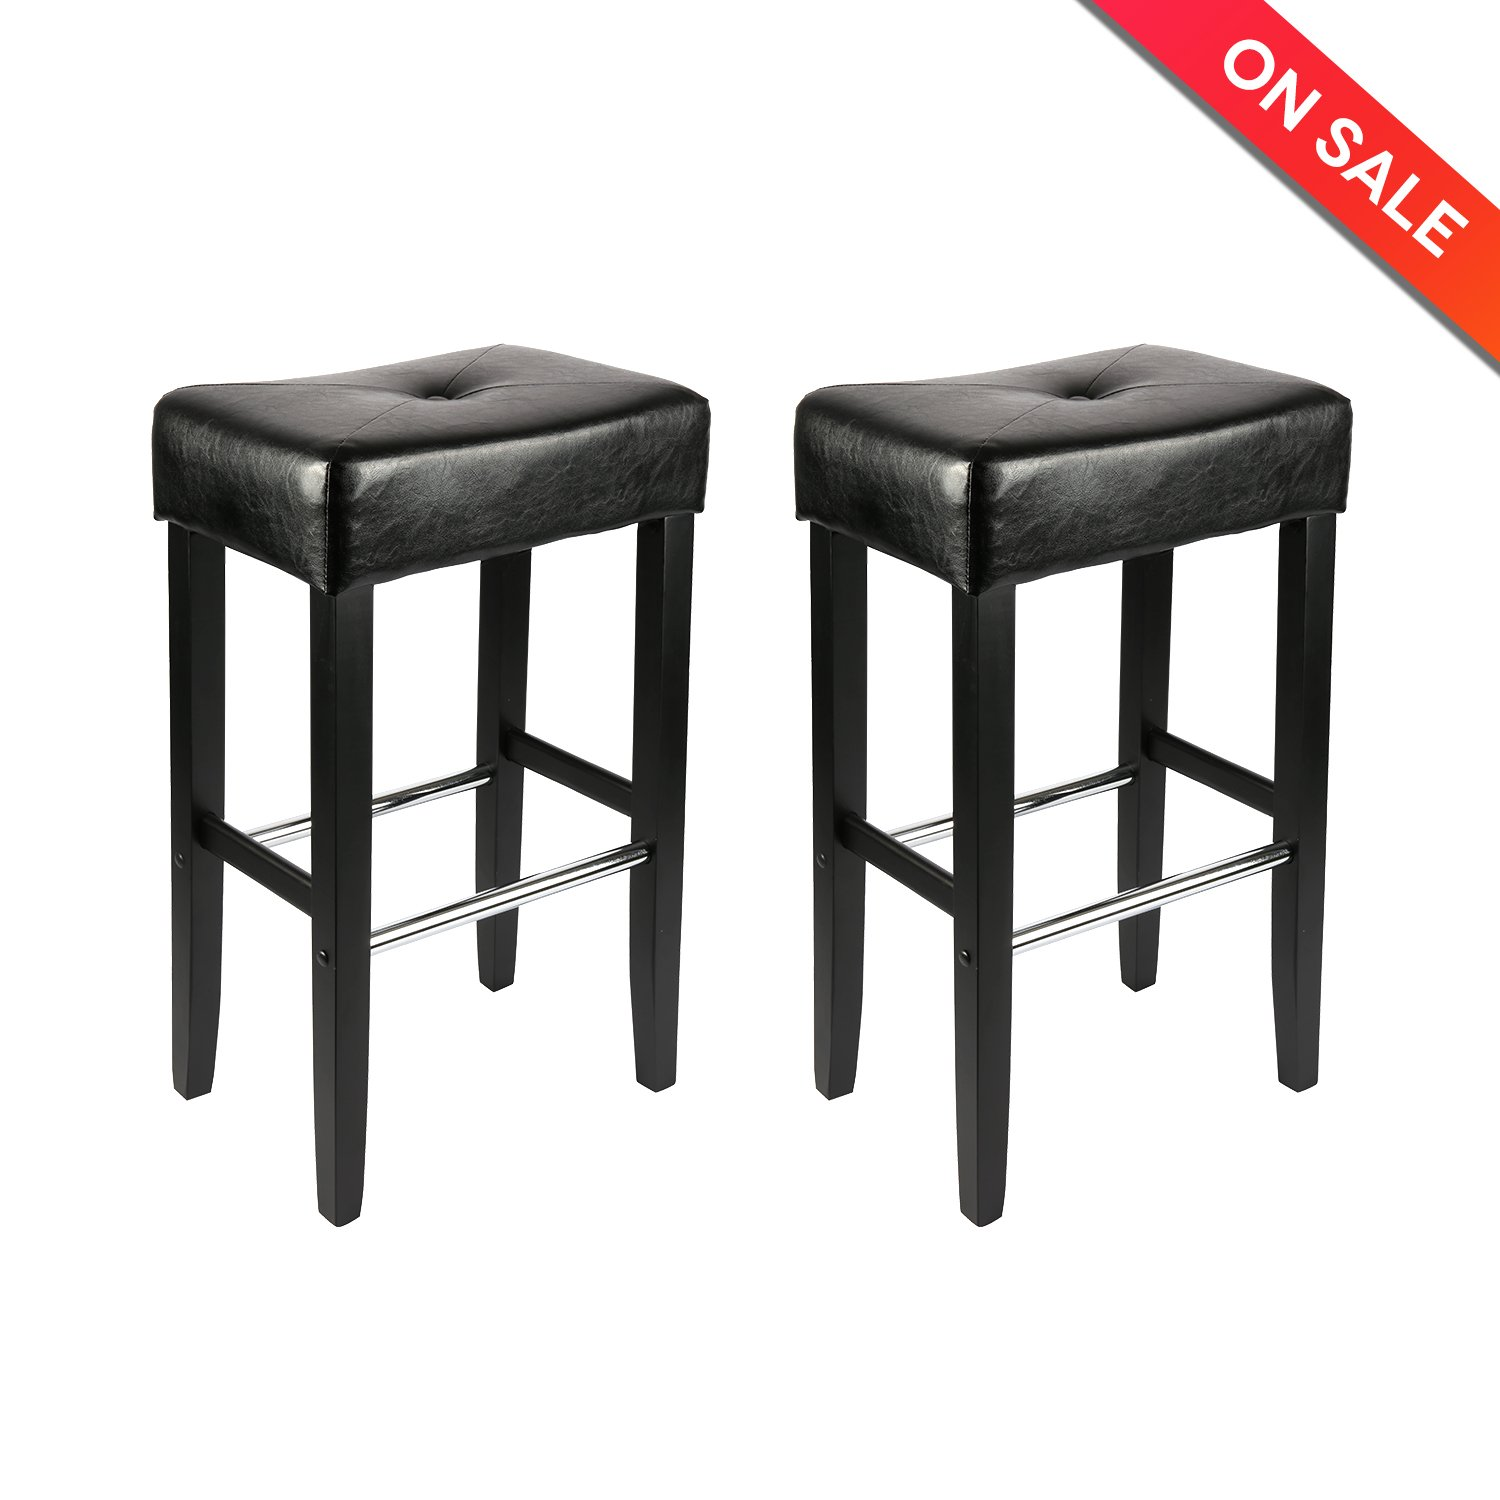 Cheap 30 Inch Black Bar Stools Find 30 Inch Black Bar Stools Deals